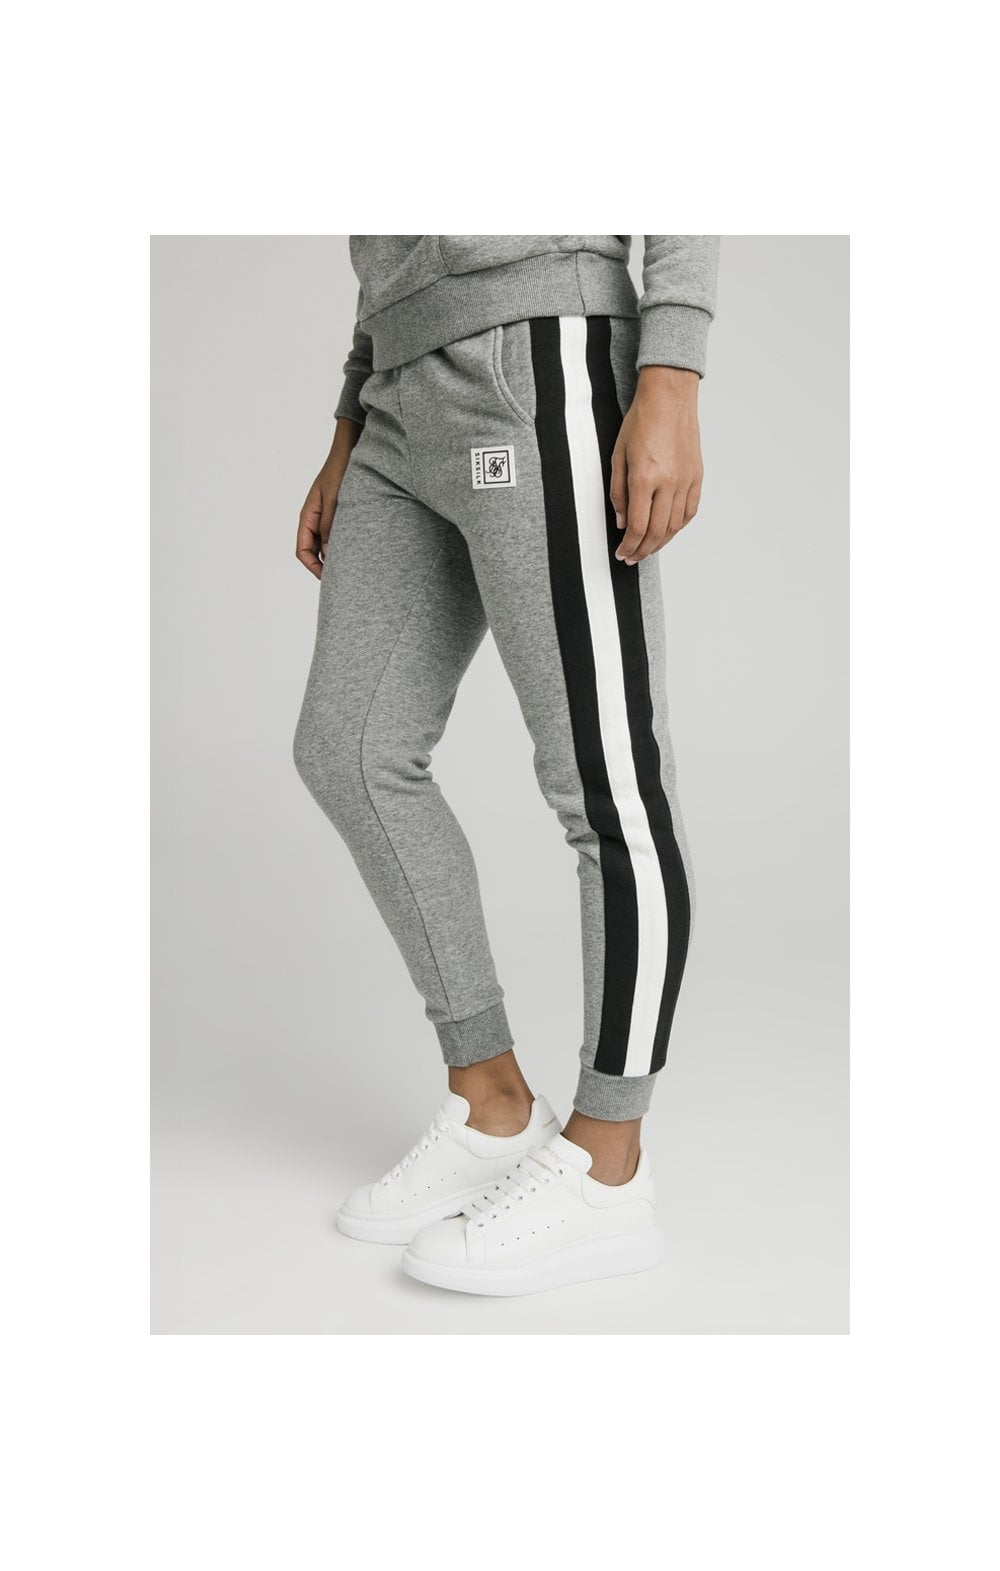 SikSilk Sports Luxe Track Pants - Grey Marl (3)